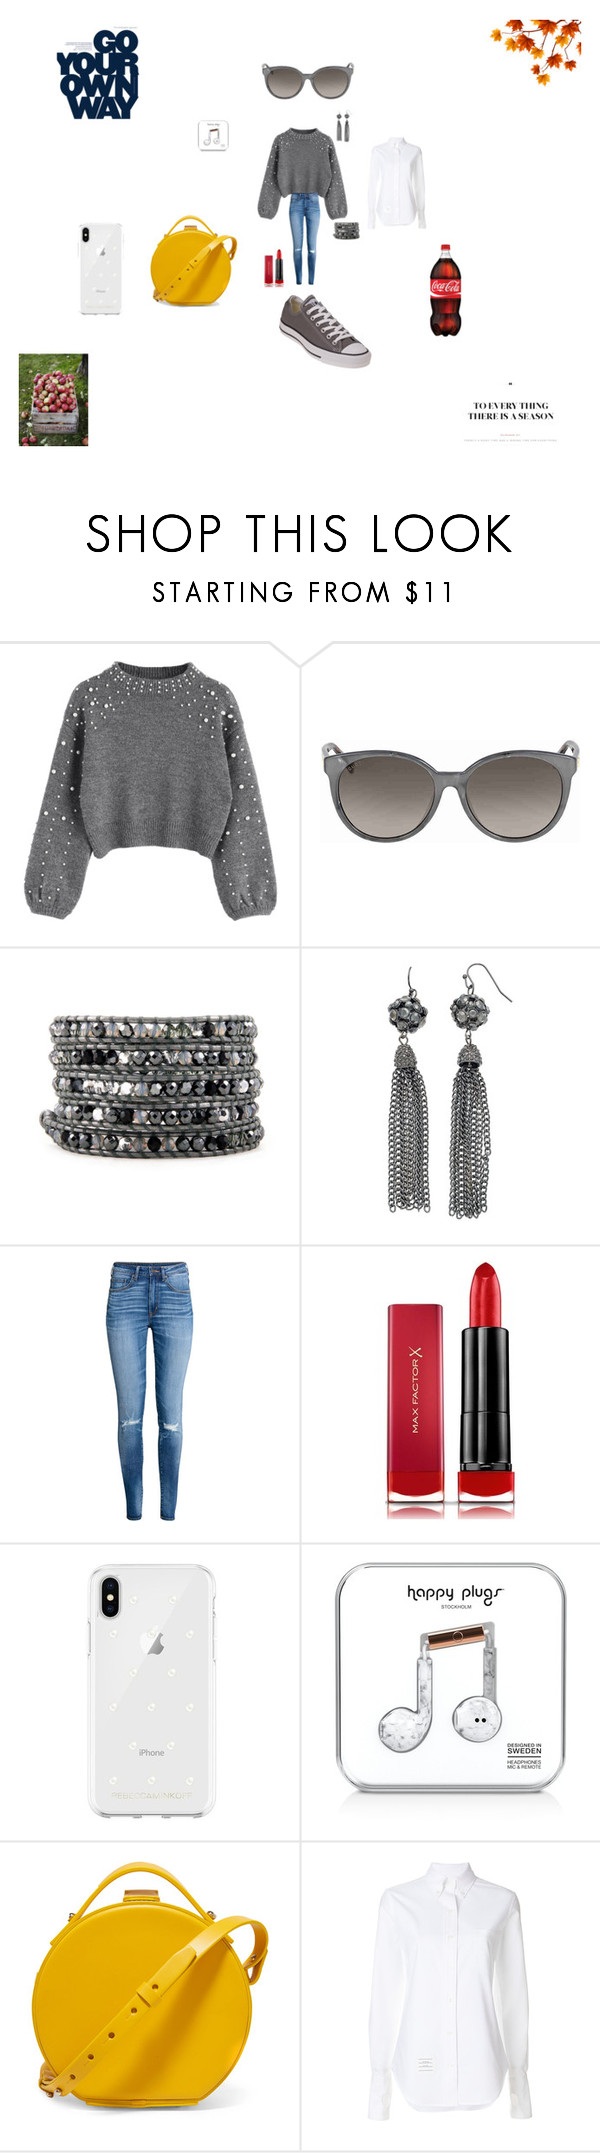 """""""Untitled #589"""" by hanna-debruhl ❤ liked on Polyvore featuring Gucci, H&M, Max Factor, Rebecca Minkoff, Happy Plugs, Nico Giani, Thom Browne and Converse"""